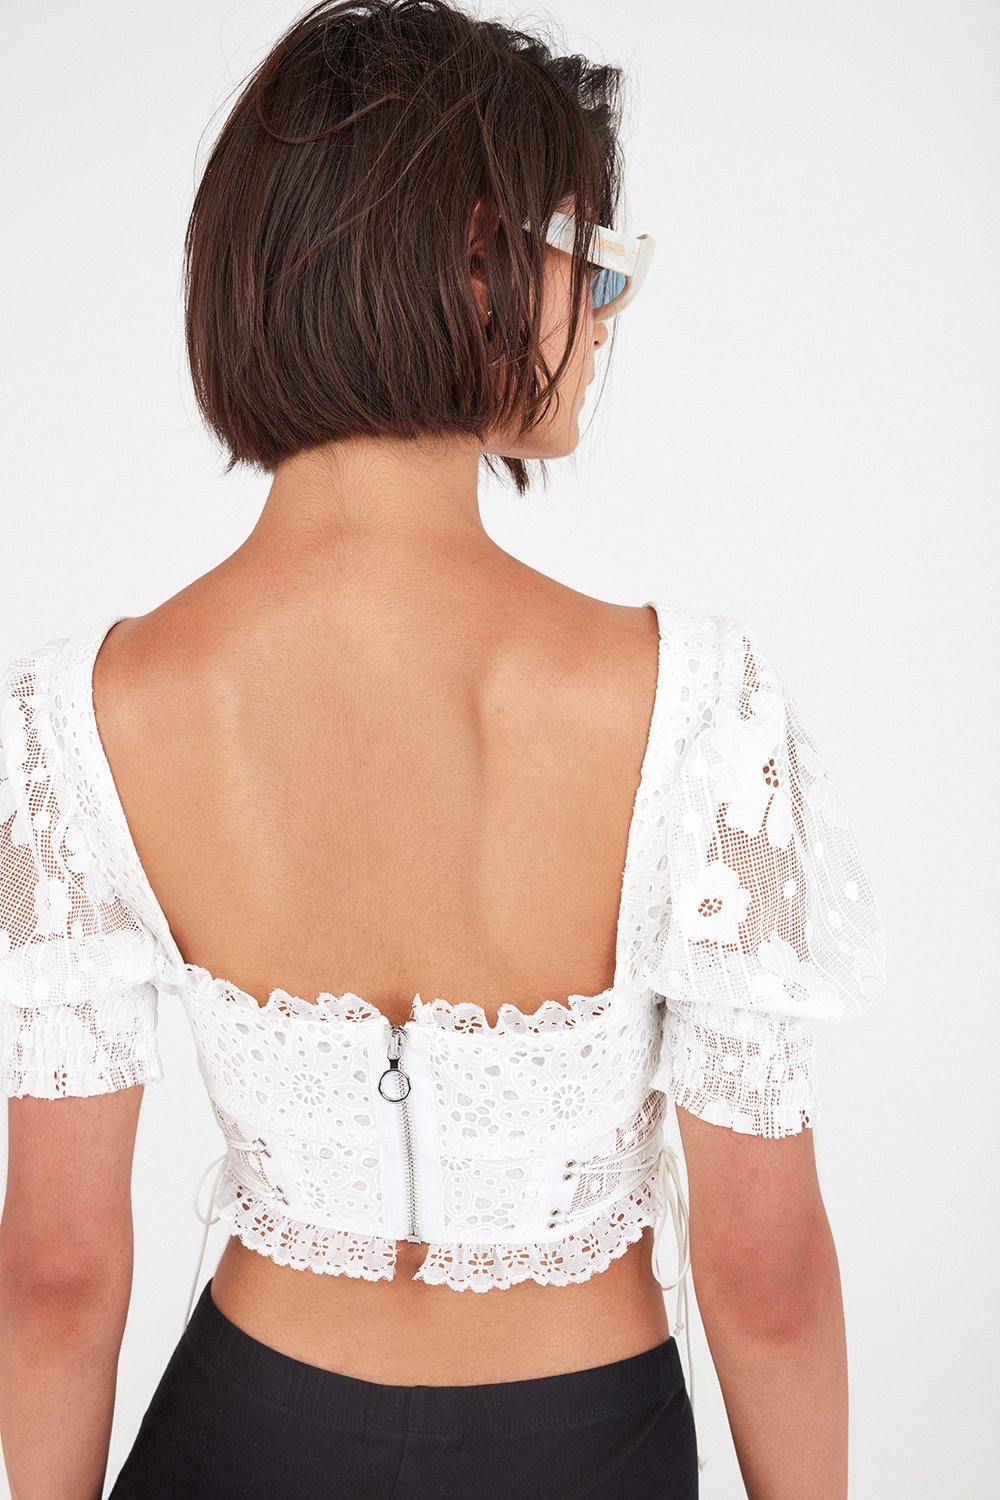 e5fc0157508 For Love and Lemons Indio Lace Crop Top – Bliss Bandits